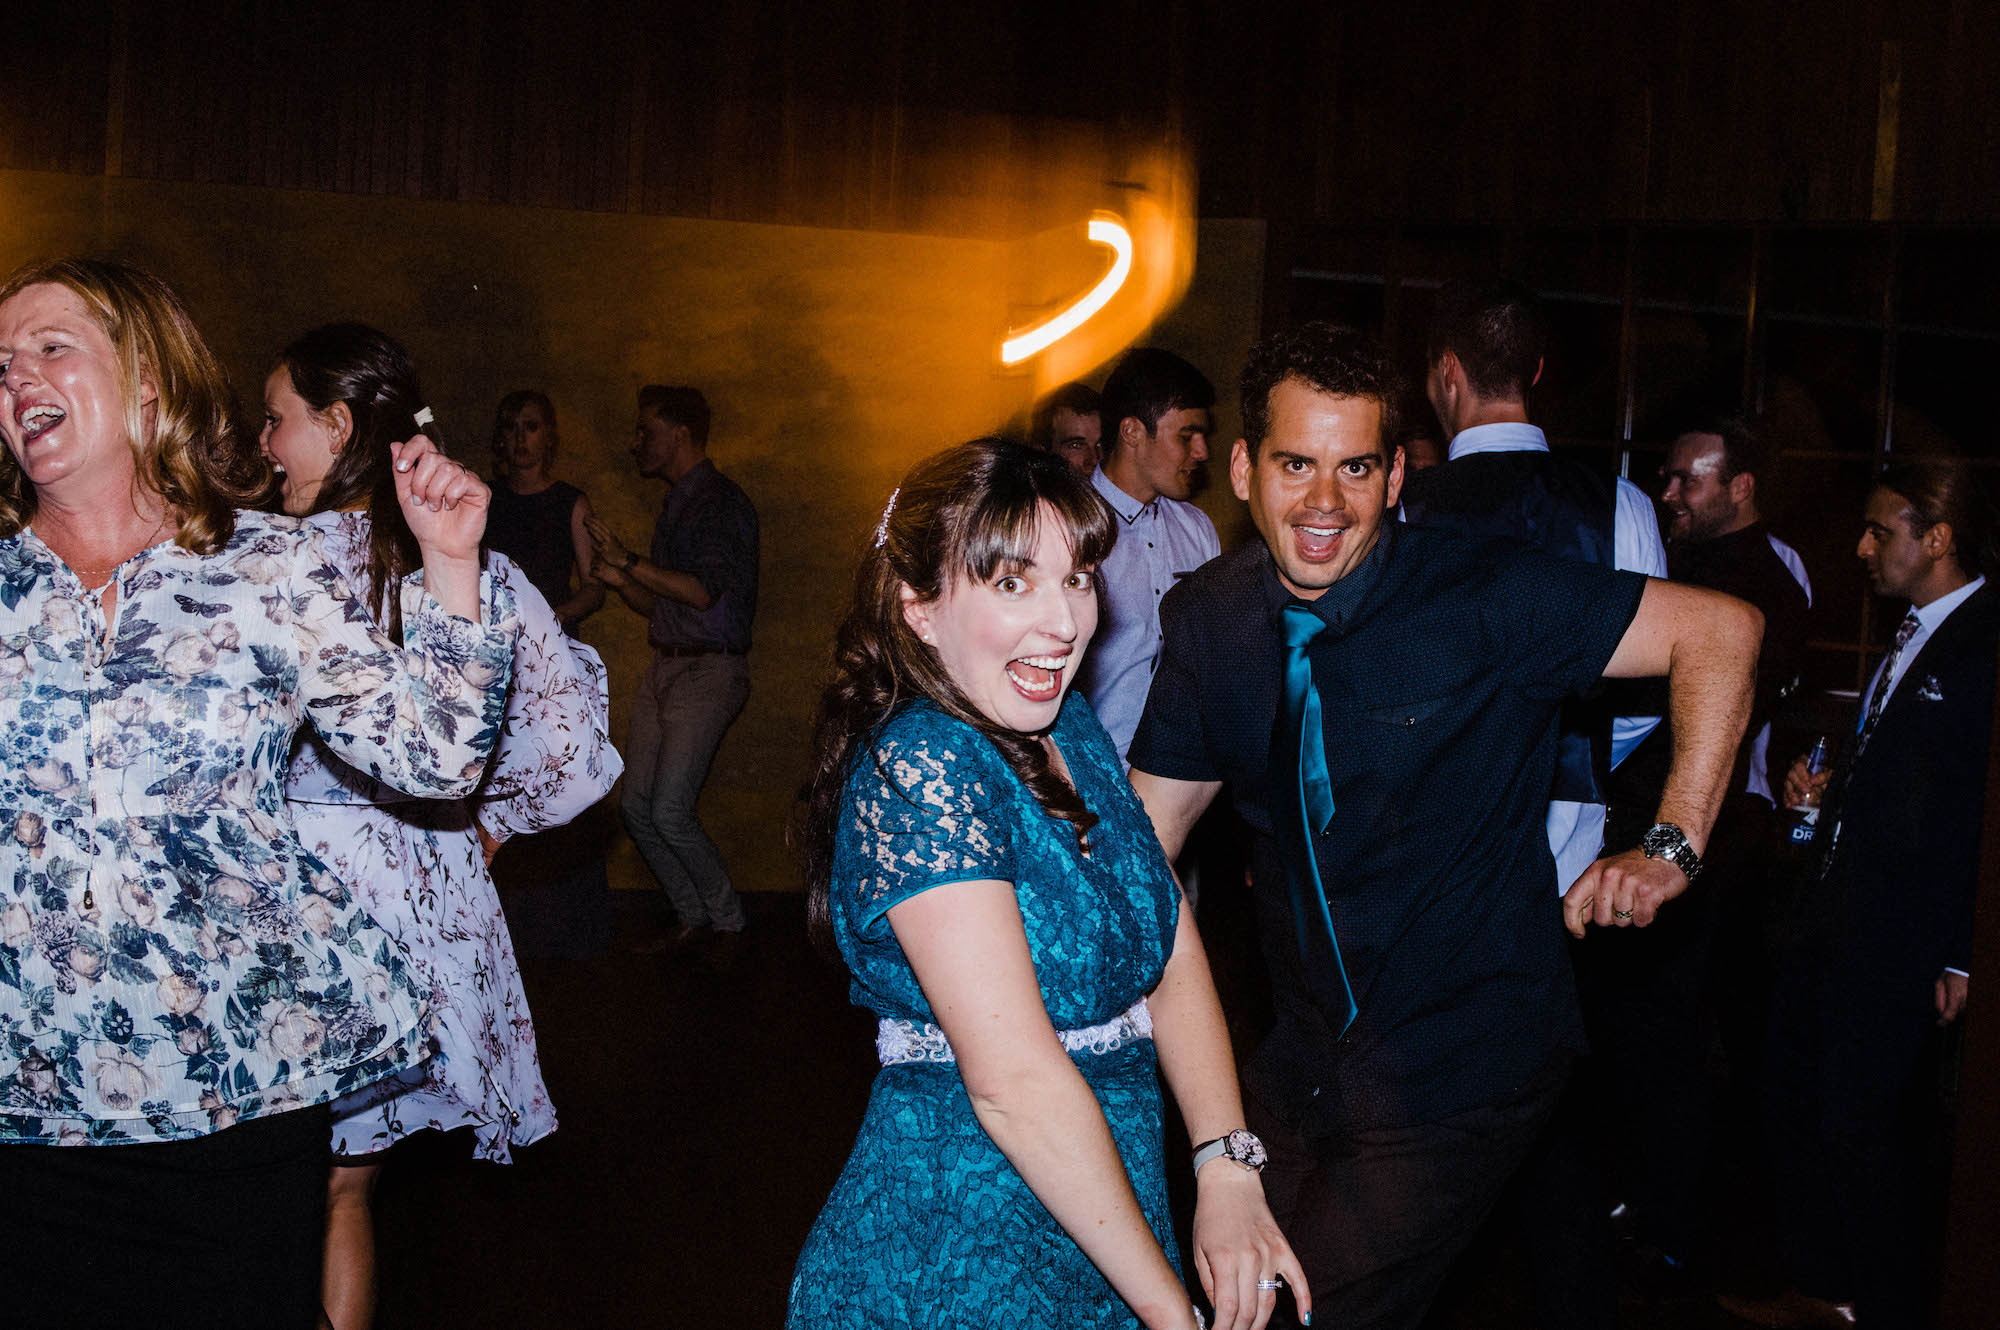 Guests dancing at a Quarry Farm Whitby wedding reception